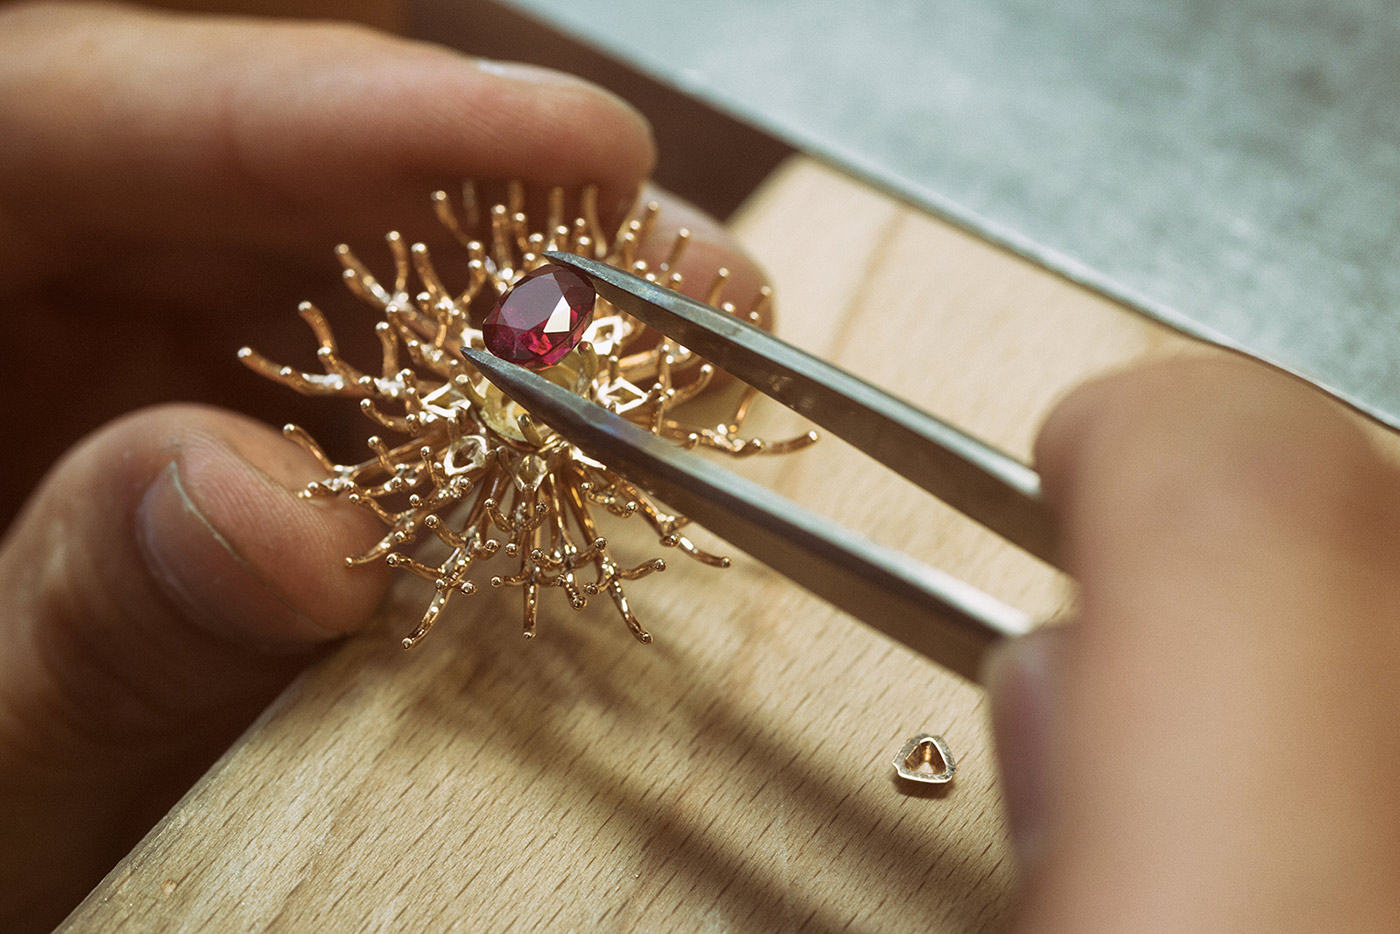 The making of Gübelin's 'Red Dahlia' ring, with the central Burmese ruby being set